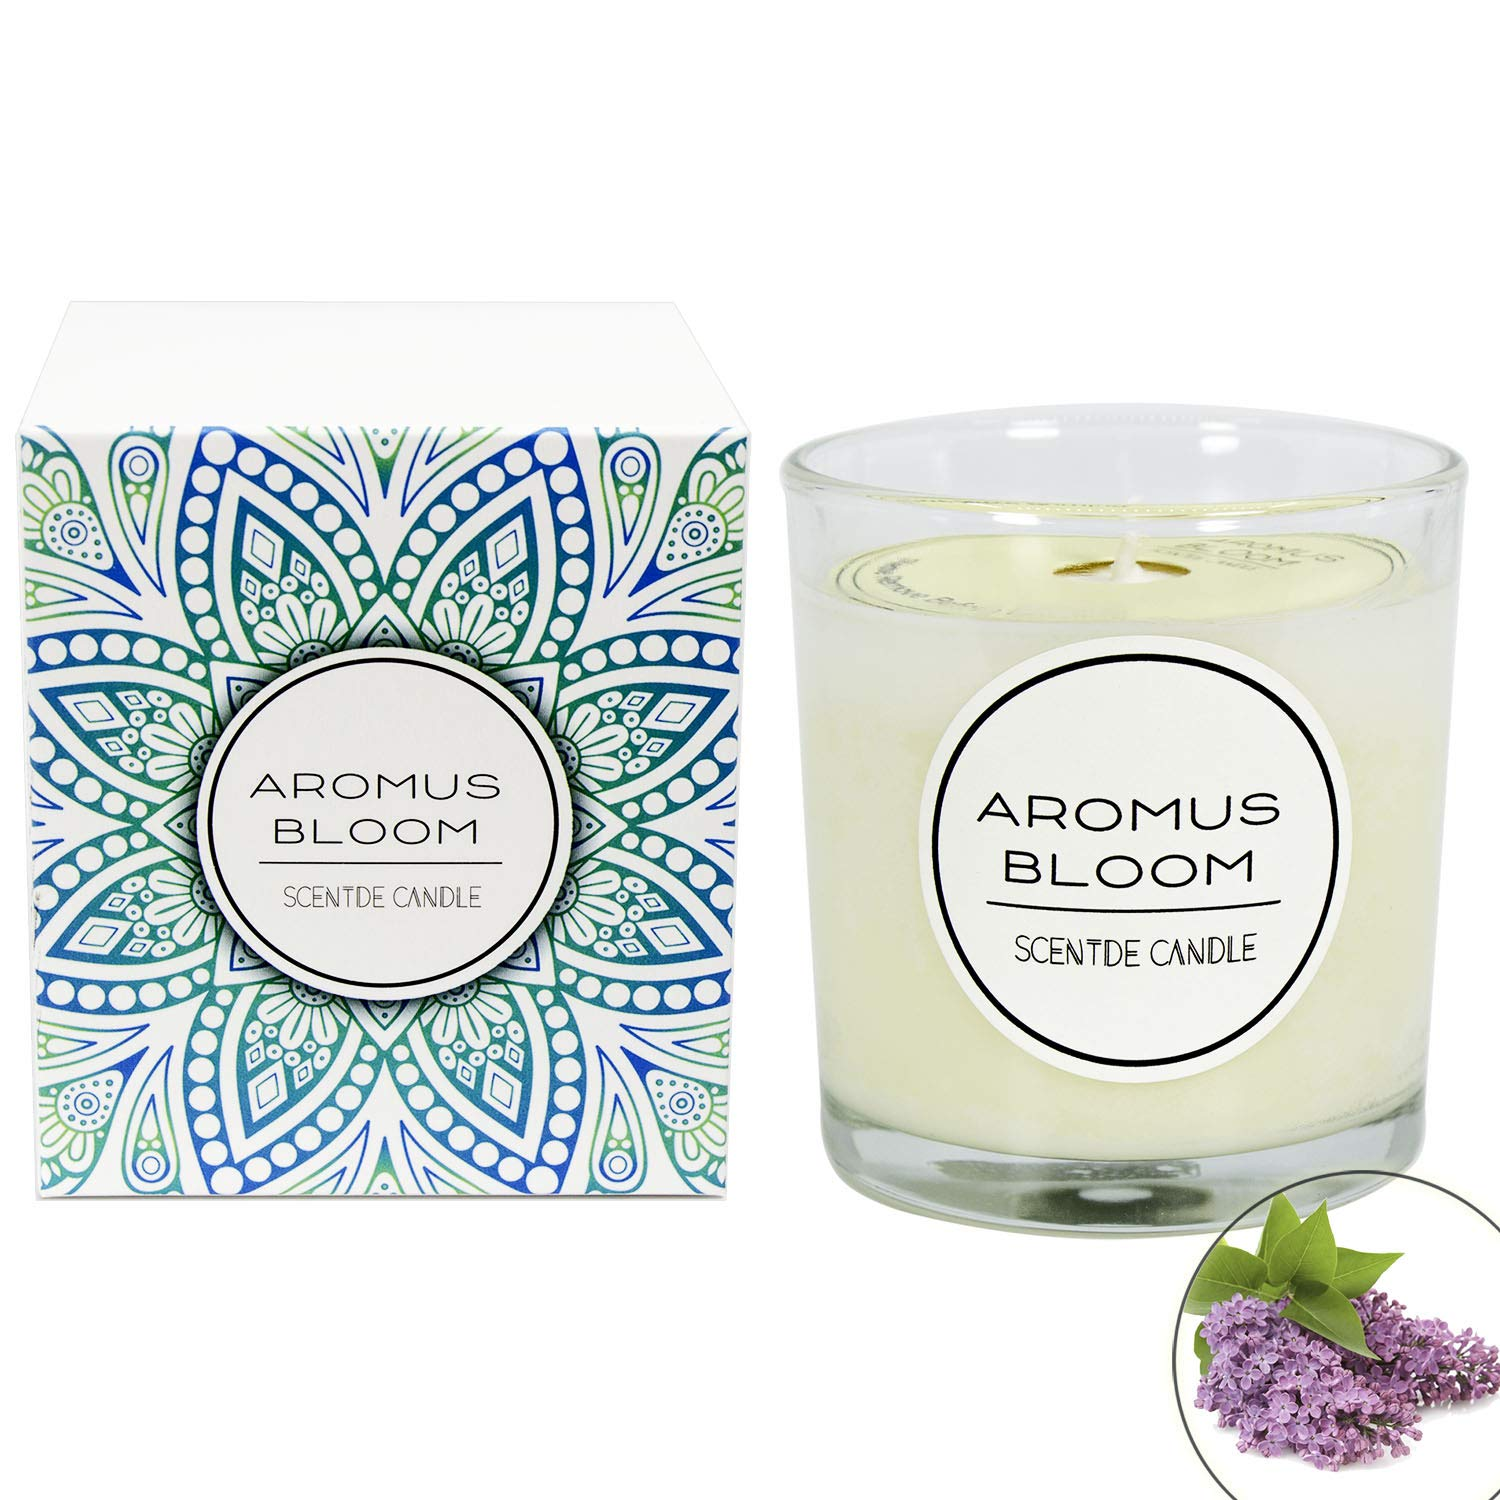 AromusBloom Natural Essential Oils Scented Candle Gift, 100% Eco-Friendly Soy Wax Aromatherapy Candle, Vanilla/Geraniums/Lemon/Jasmine/Lavender etc. 10 Scents(Gardenia)